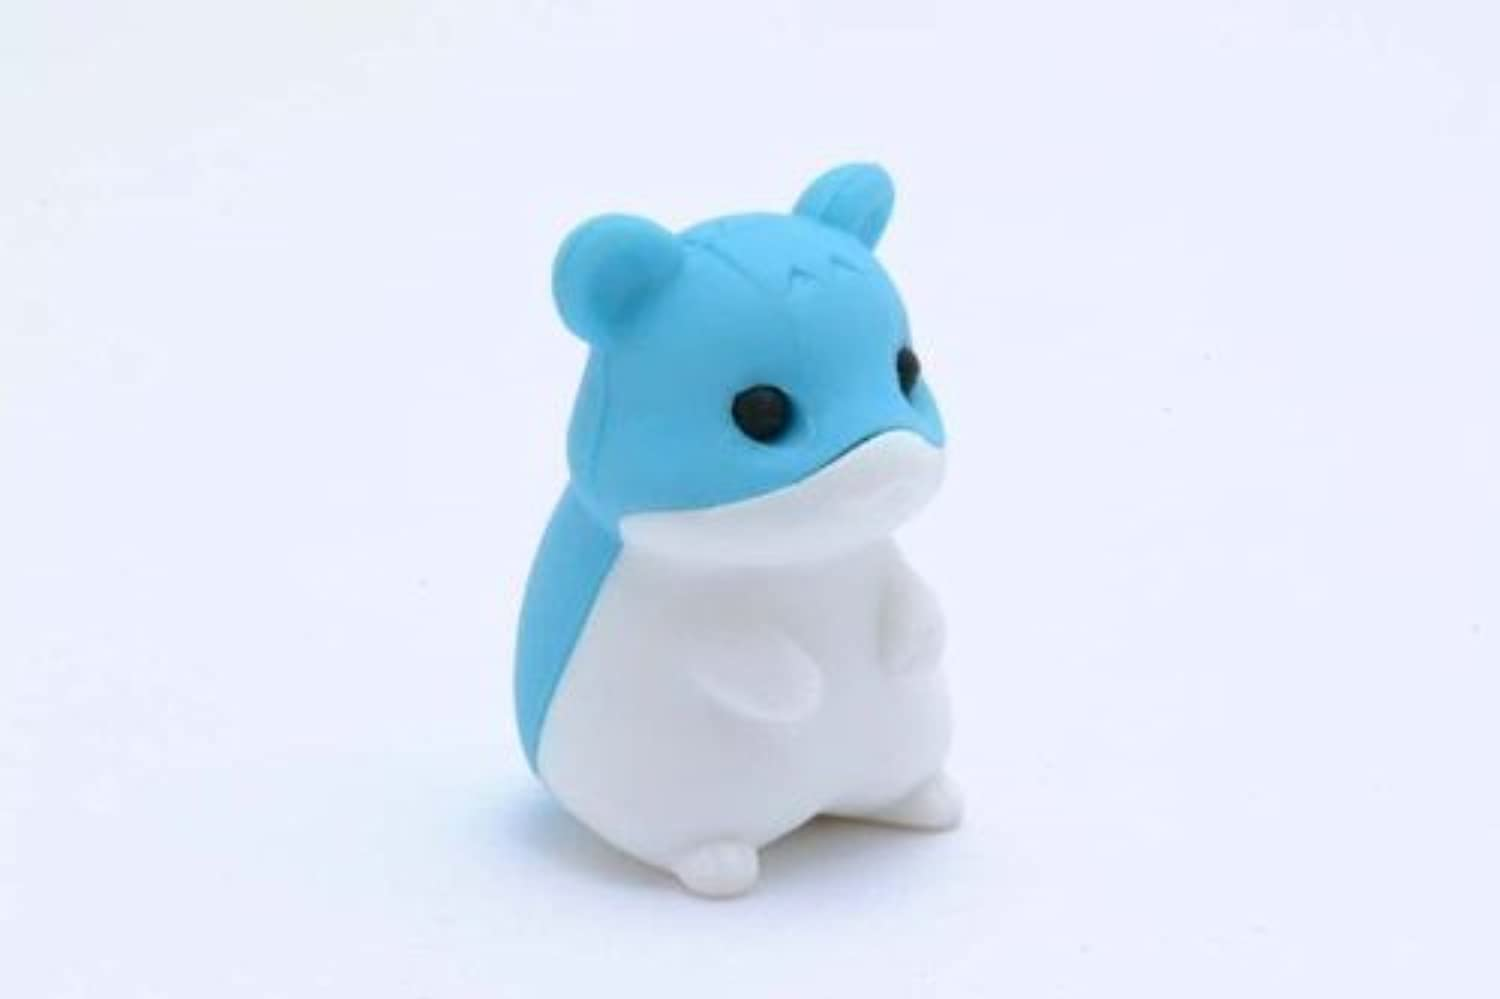 Iwako Gummy Mix And Match Collectible Eraserz - Fluffball The Guinea Pig In Blau by Iwako